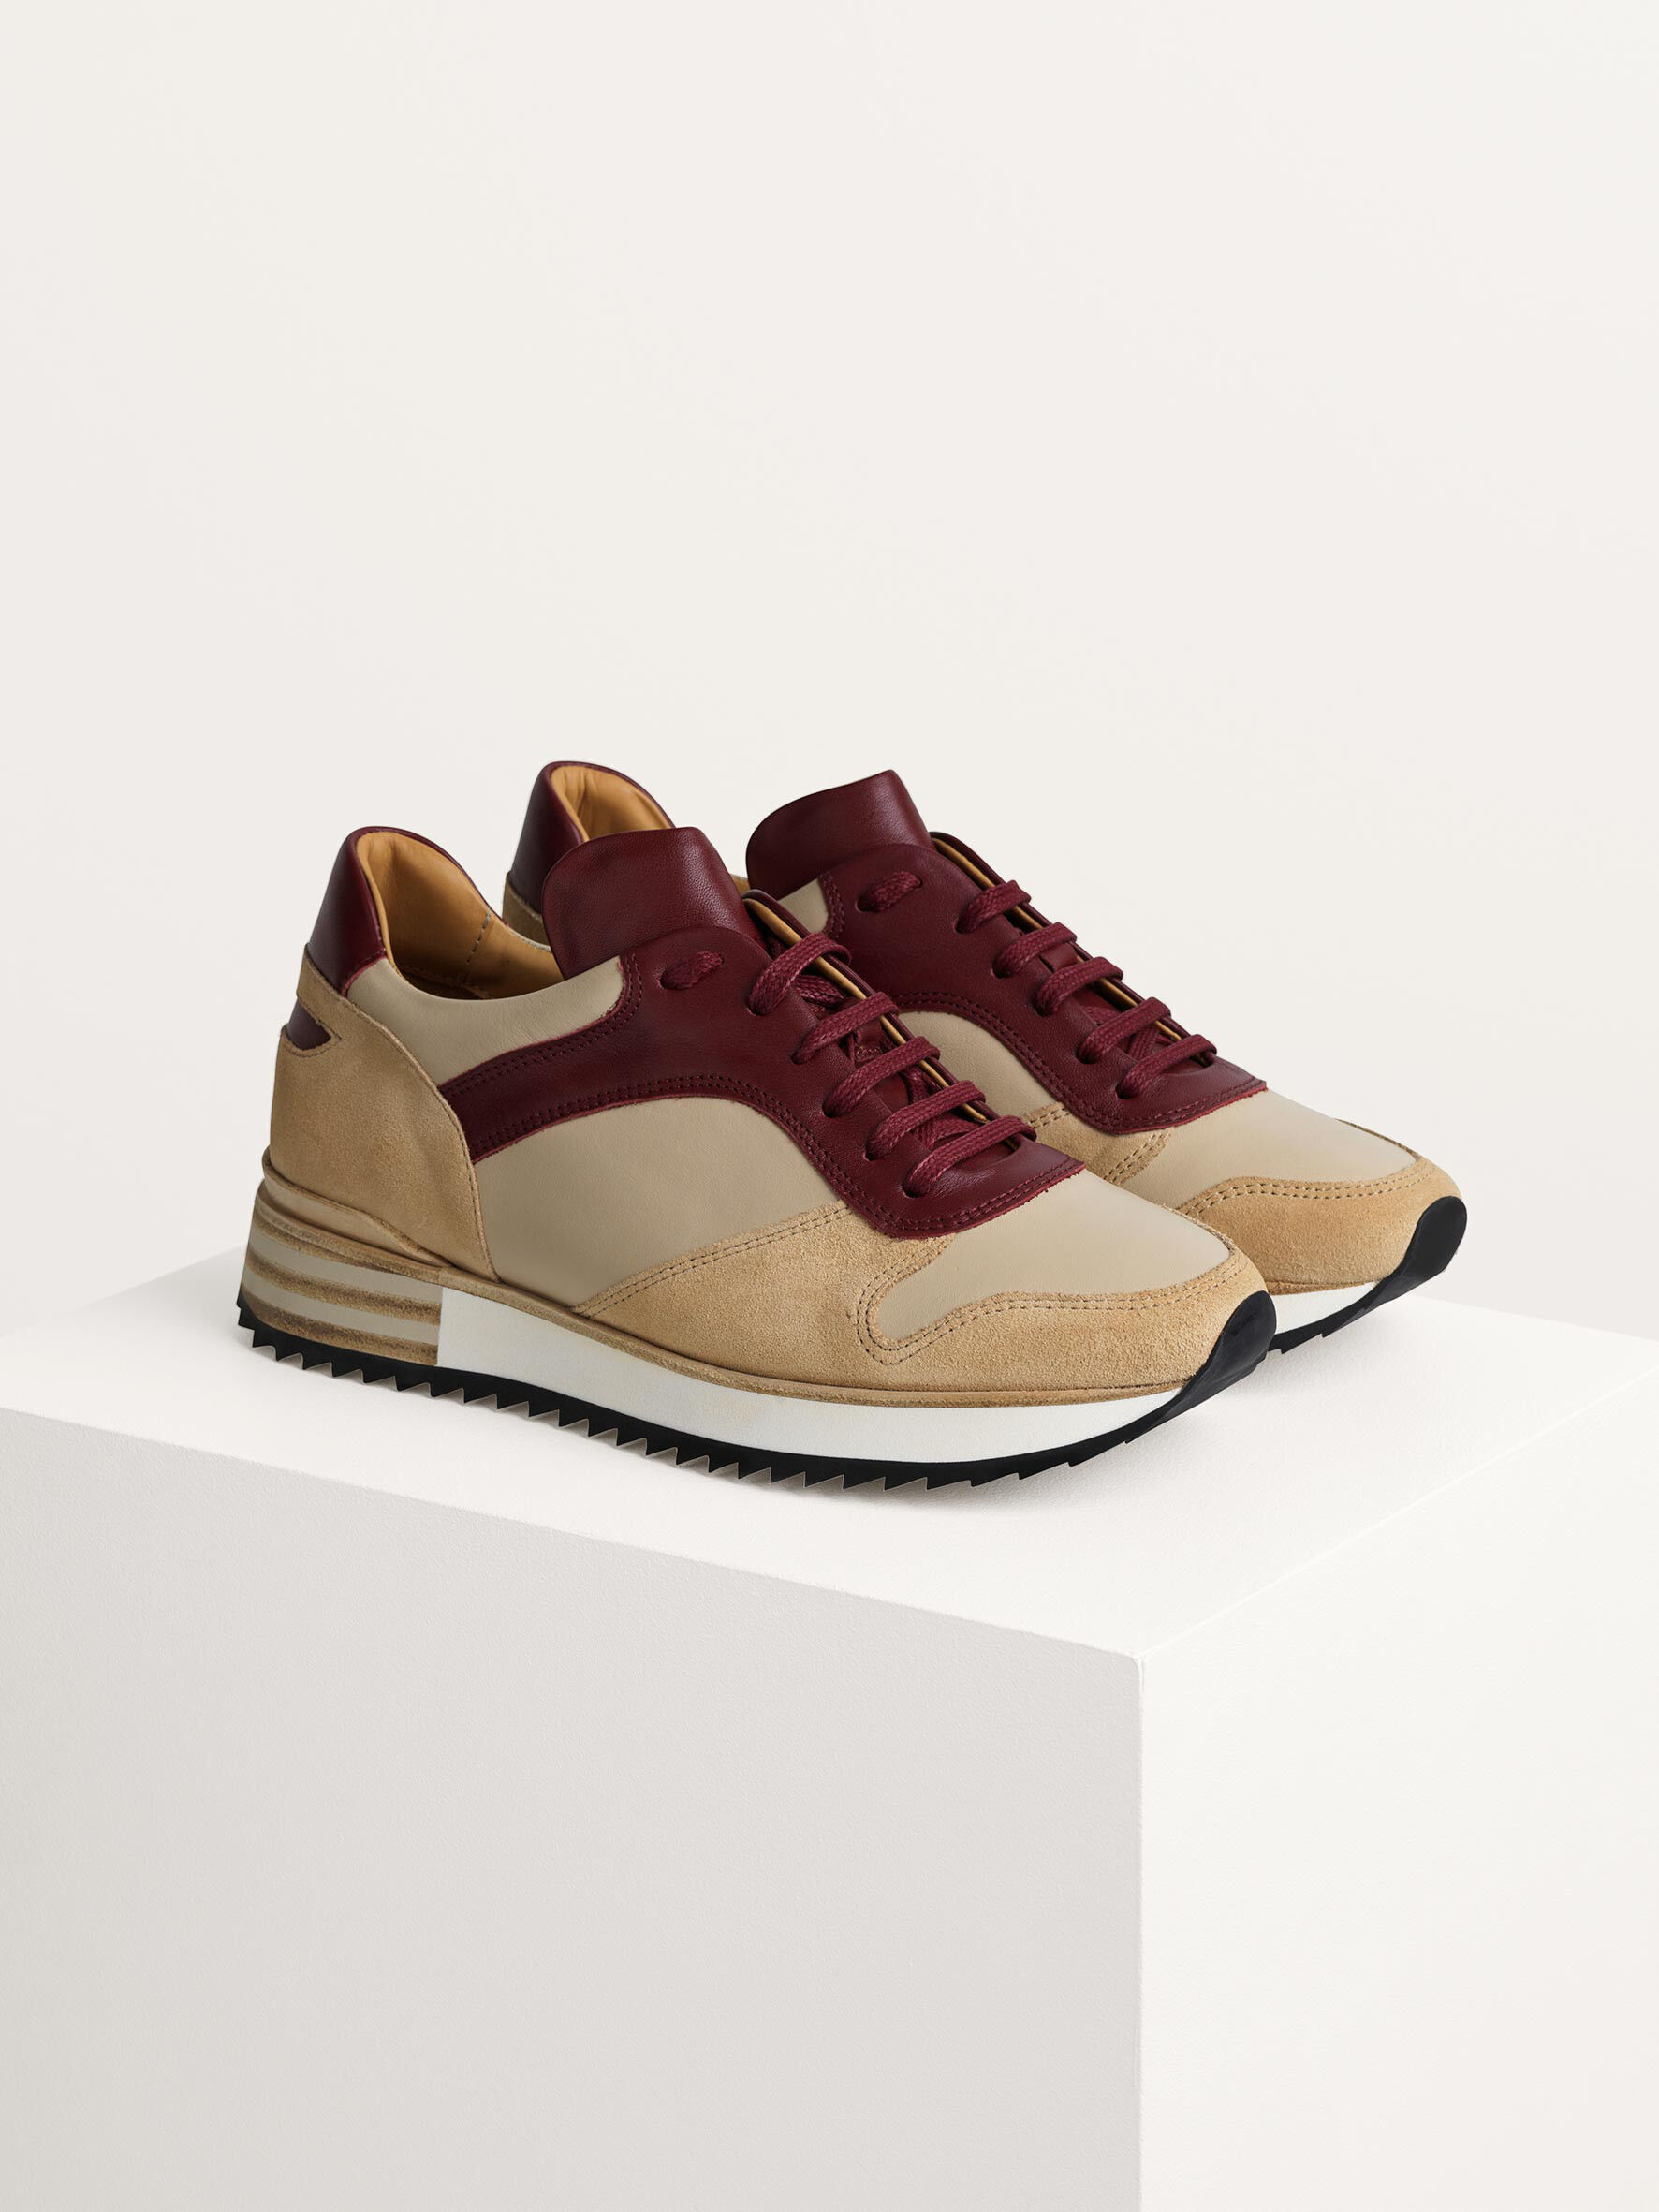 Lou Lou sneakers Buy Exclusive offers online